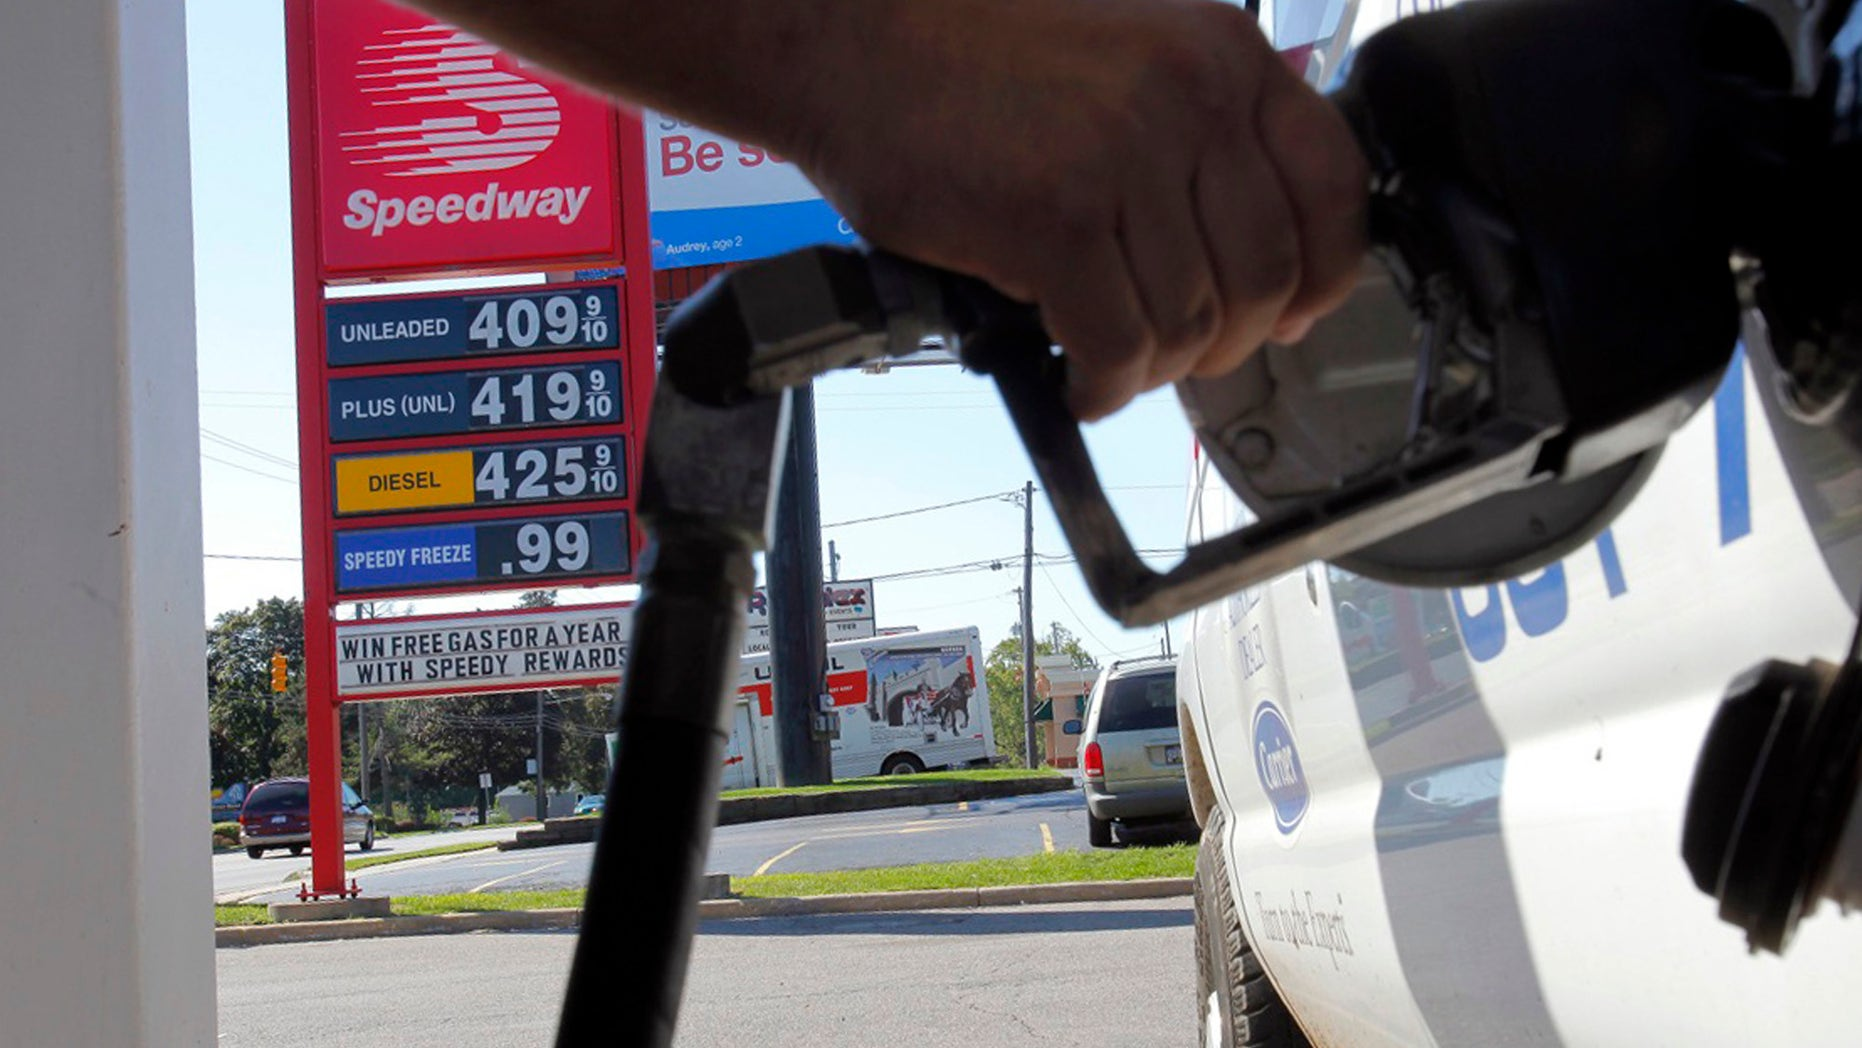 FILE-In this Tuesday, Aug. 28, 2012, file photo, a  man pumps gas into his van while a sign advertises that a gallon of regular unleaded costs $4.09 at the Speedway on South Westnedge Avenue in Kalamazoo, Mich. Drivers are facing the biggest one-day jump in gasoline prices in 18 months, Wednesday, Aug. 29, 2012, as Hurricane Isaac swamps the nation's oil and gas hub along the Gulf Coast. The nationwide average for a gallon of regular gas rose a nickel Wednesday to $3.80 as refineries shut down or cut back to protect against Isaac's high winds and heavy rain. (AP Photo/Kalamazoo Gazette, Mark Bugnaski)